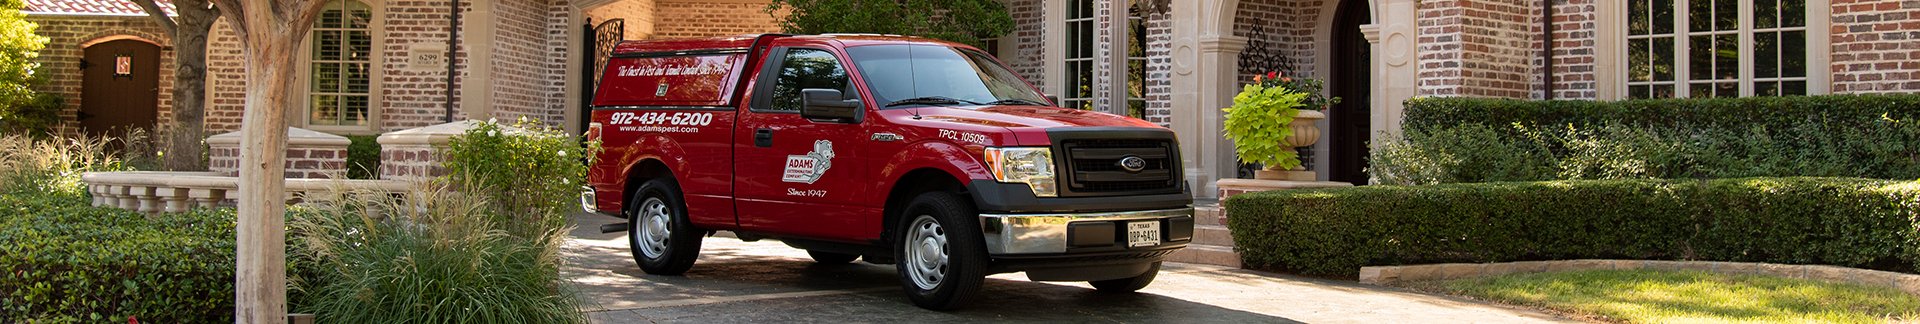 an adams pest control company vehicle in colleyville tx